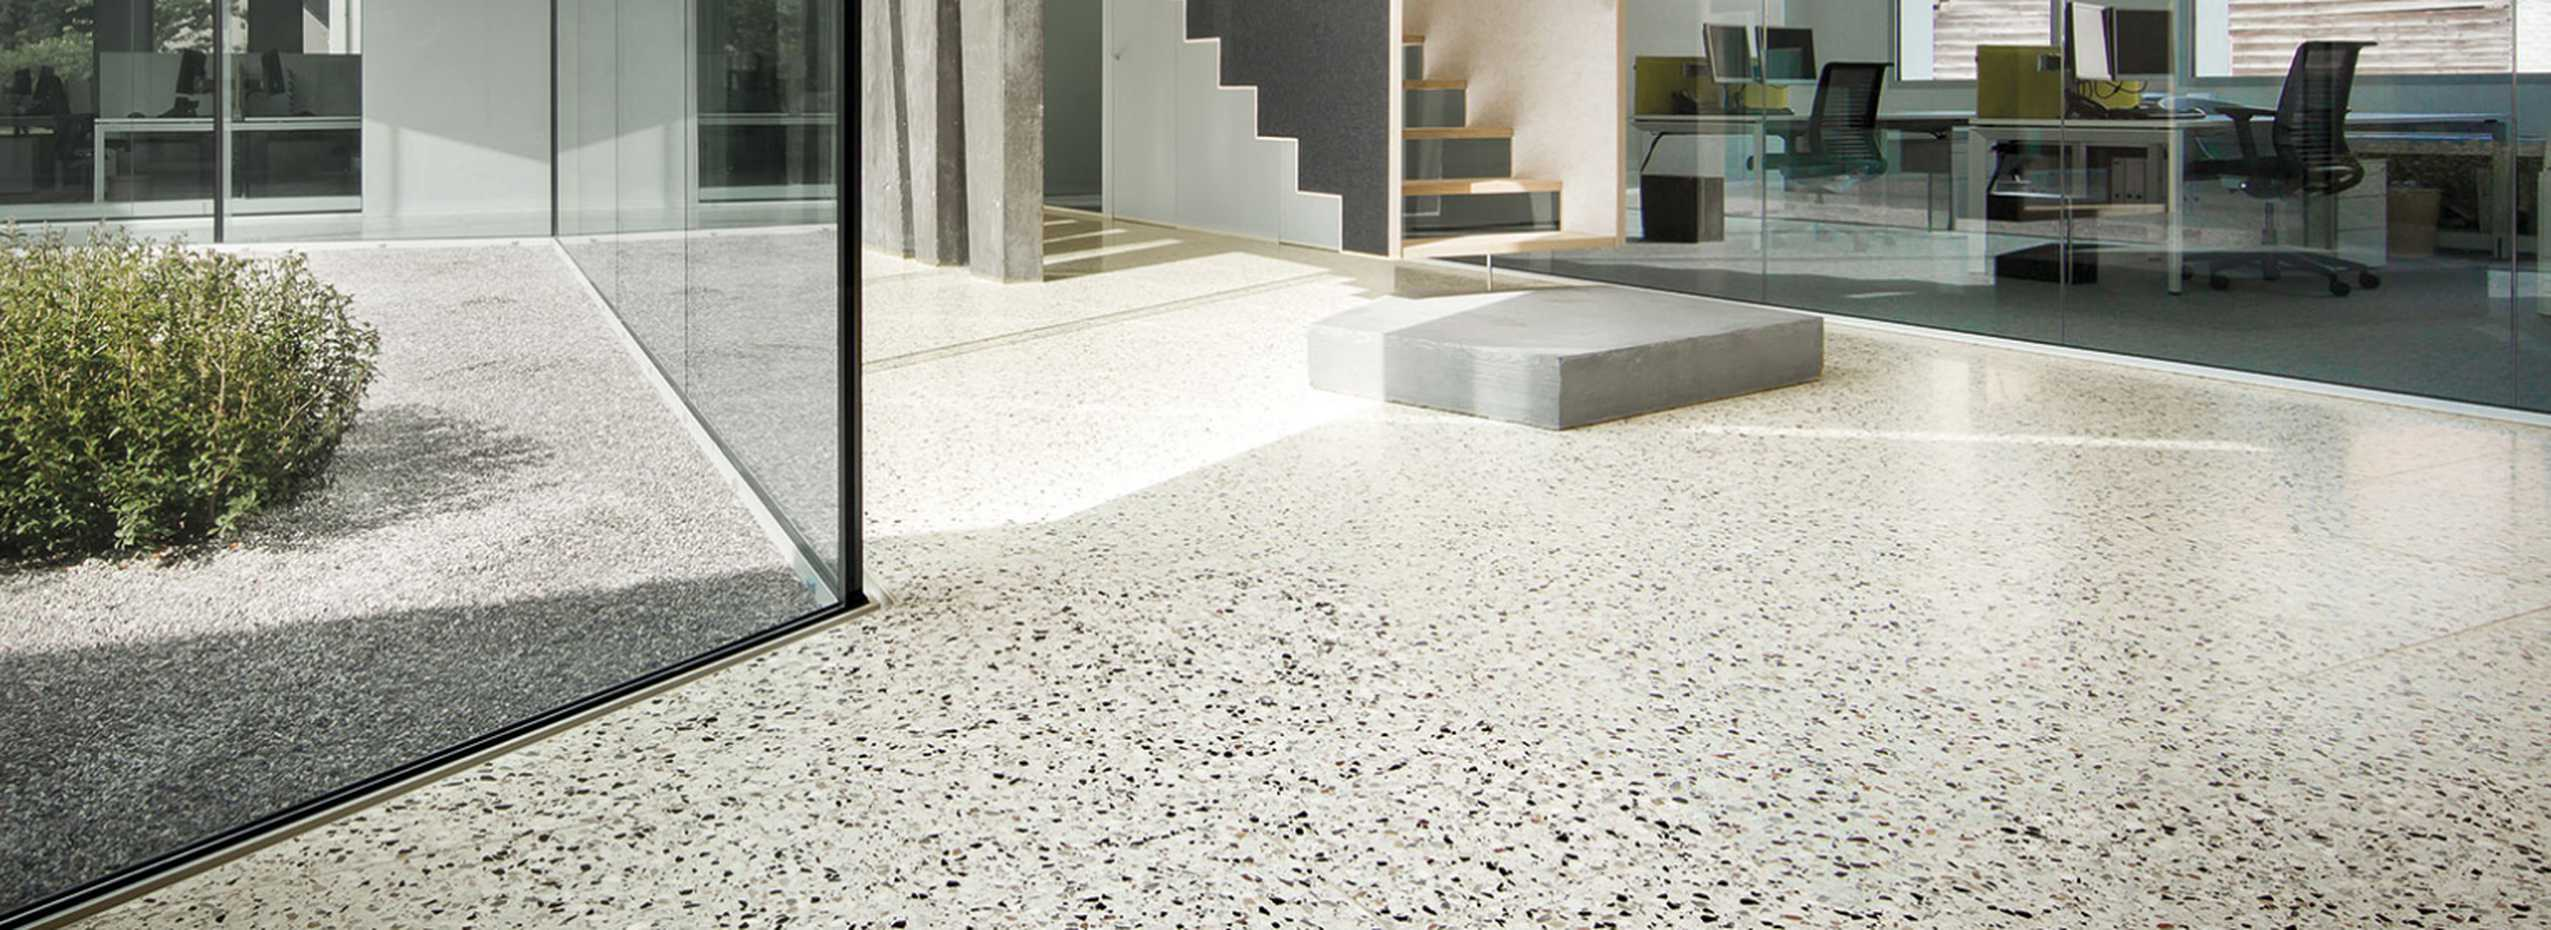 Linea Classico  by Agglotech product image 2